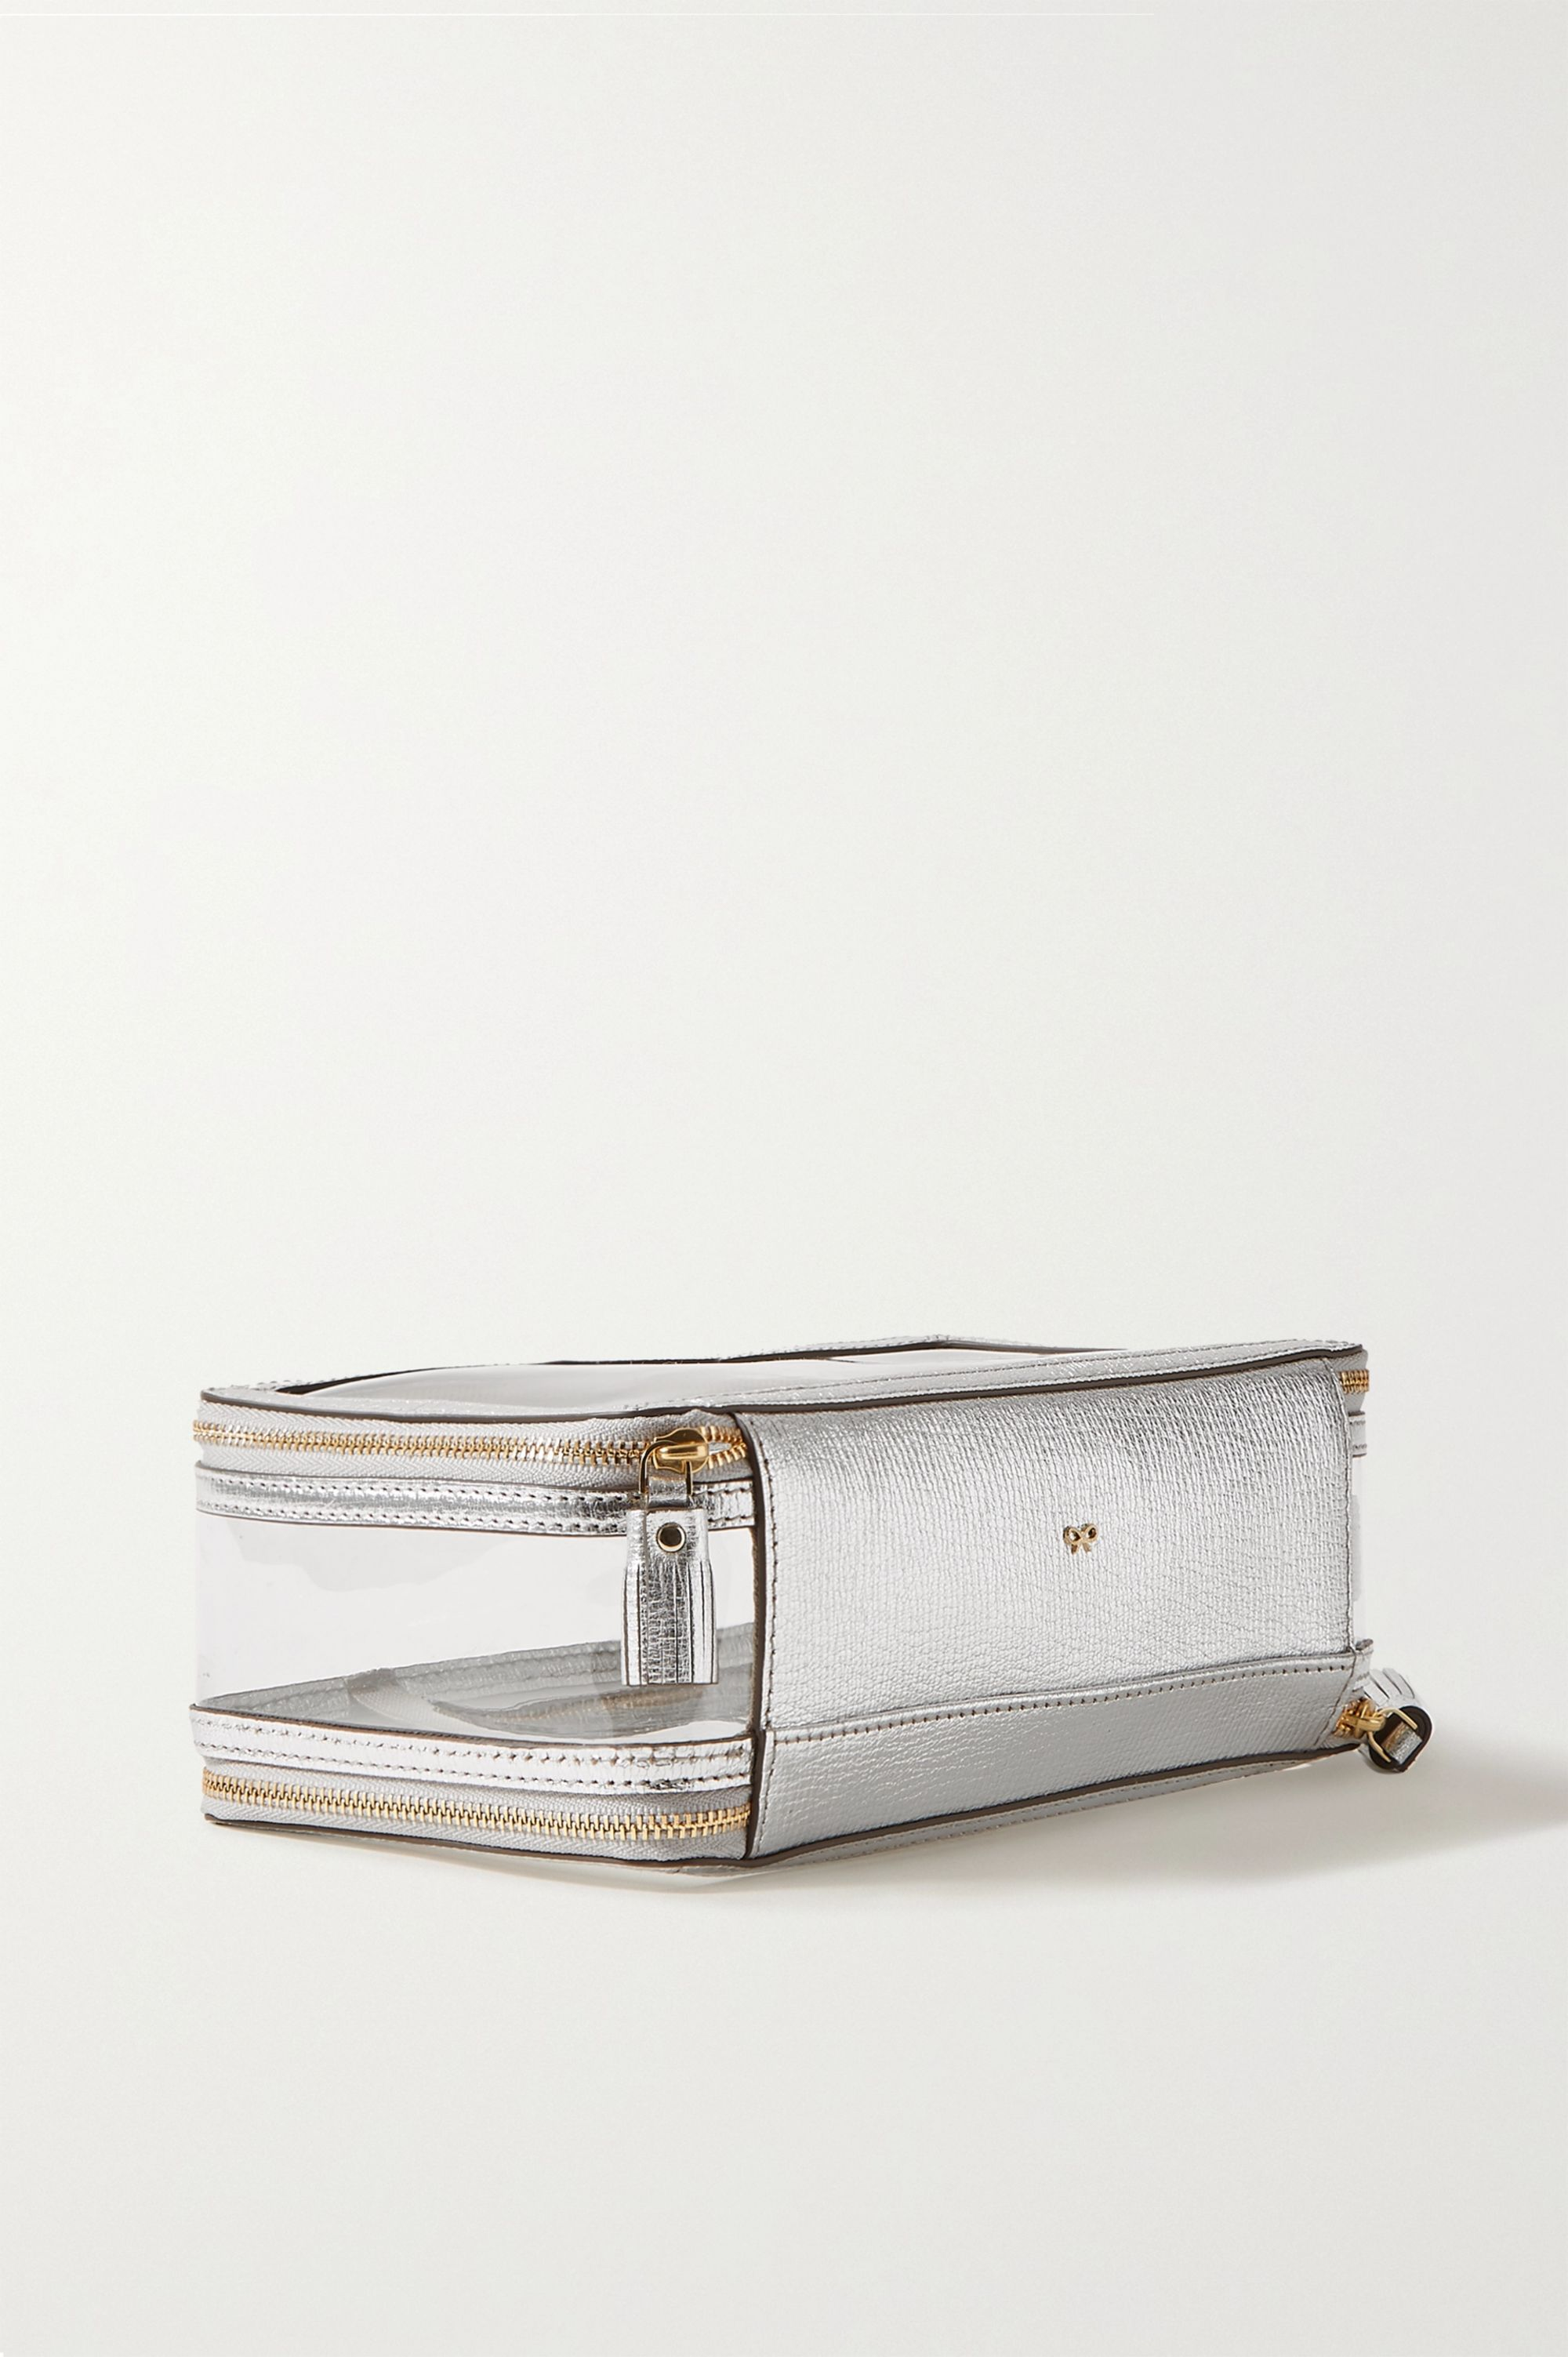 Anya Hindmarch Inflight metallic leather-trimmed Perspex cosmetics case